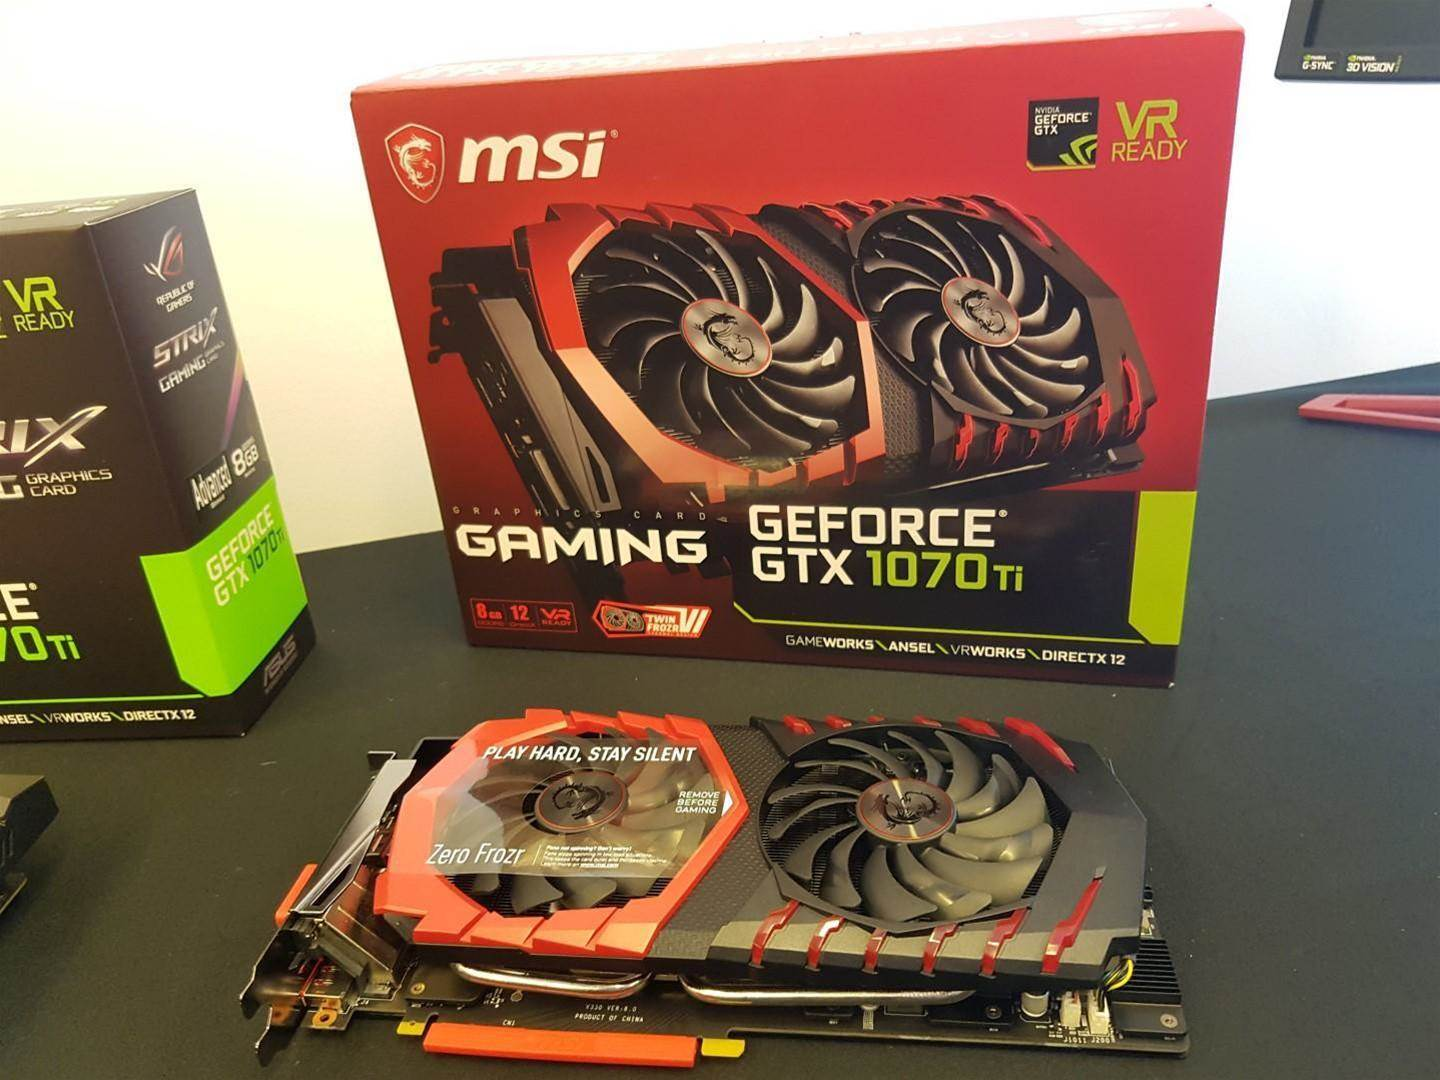 GeForce GTX 1070 Ti caught out of the box